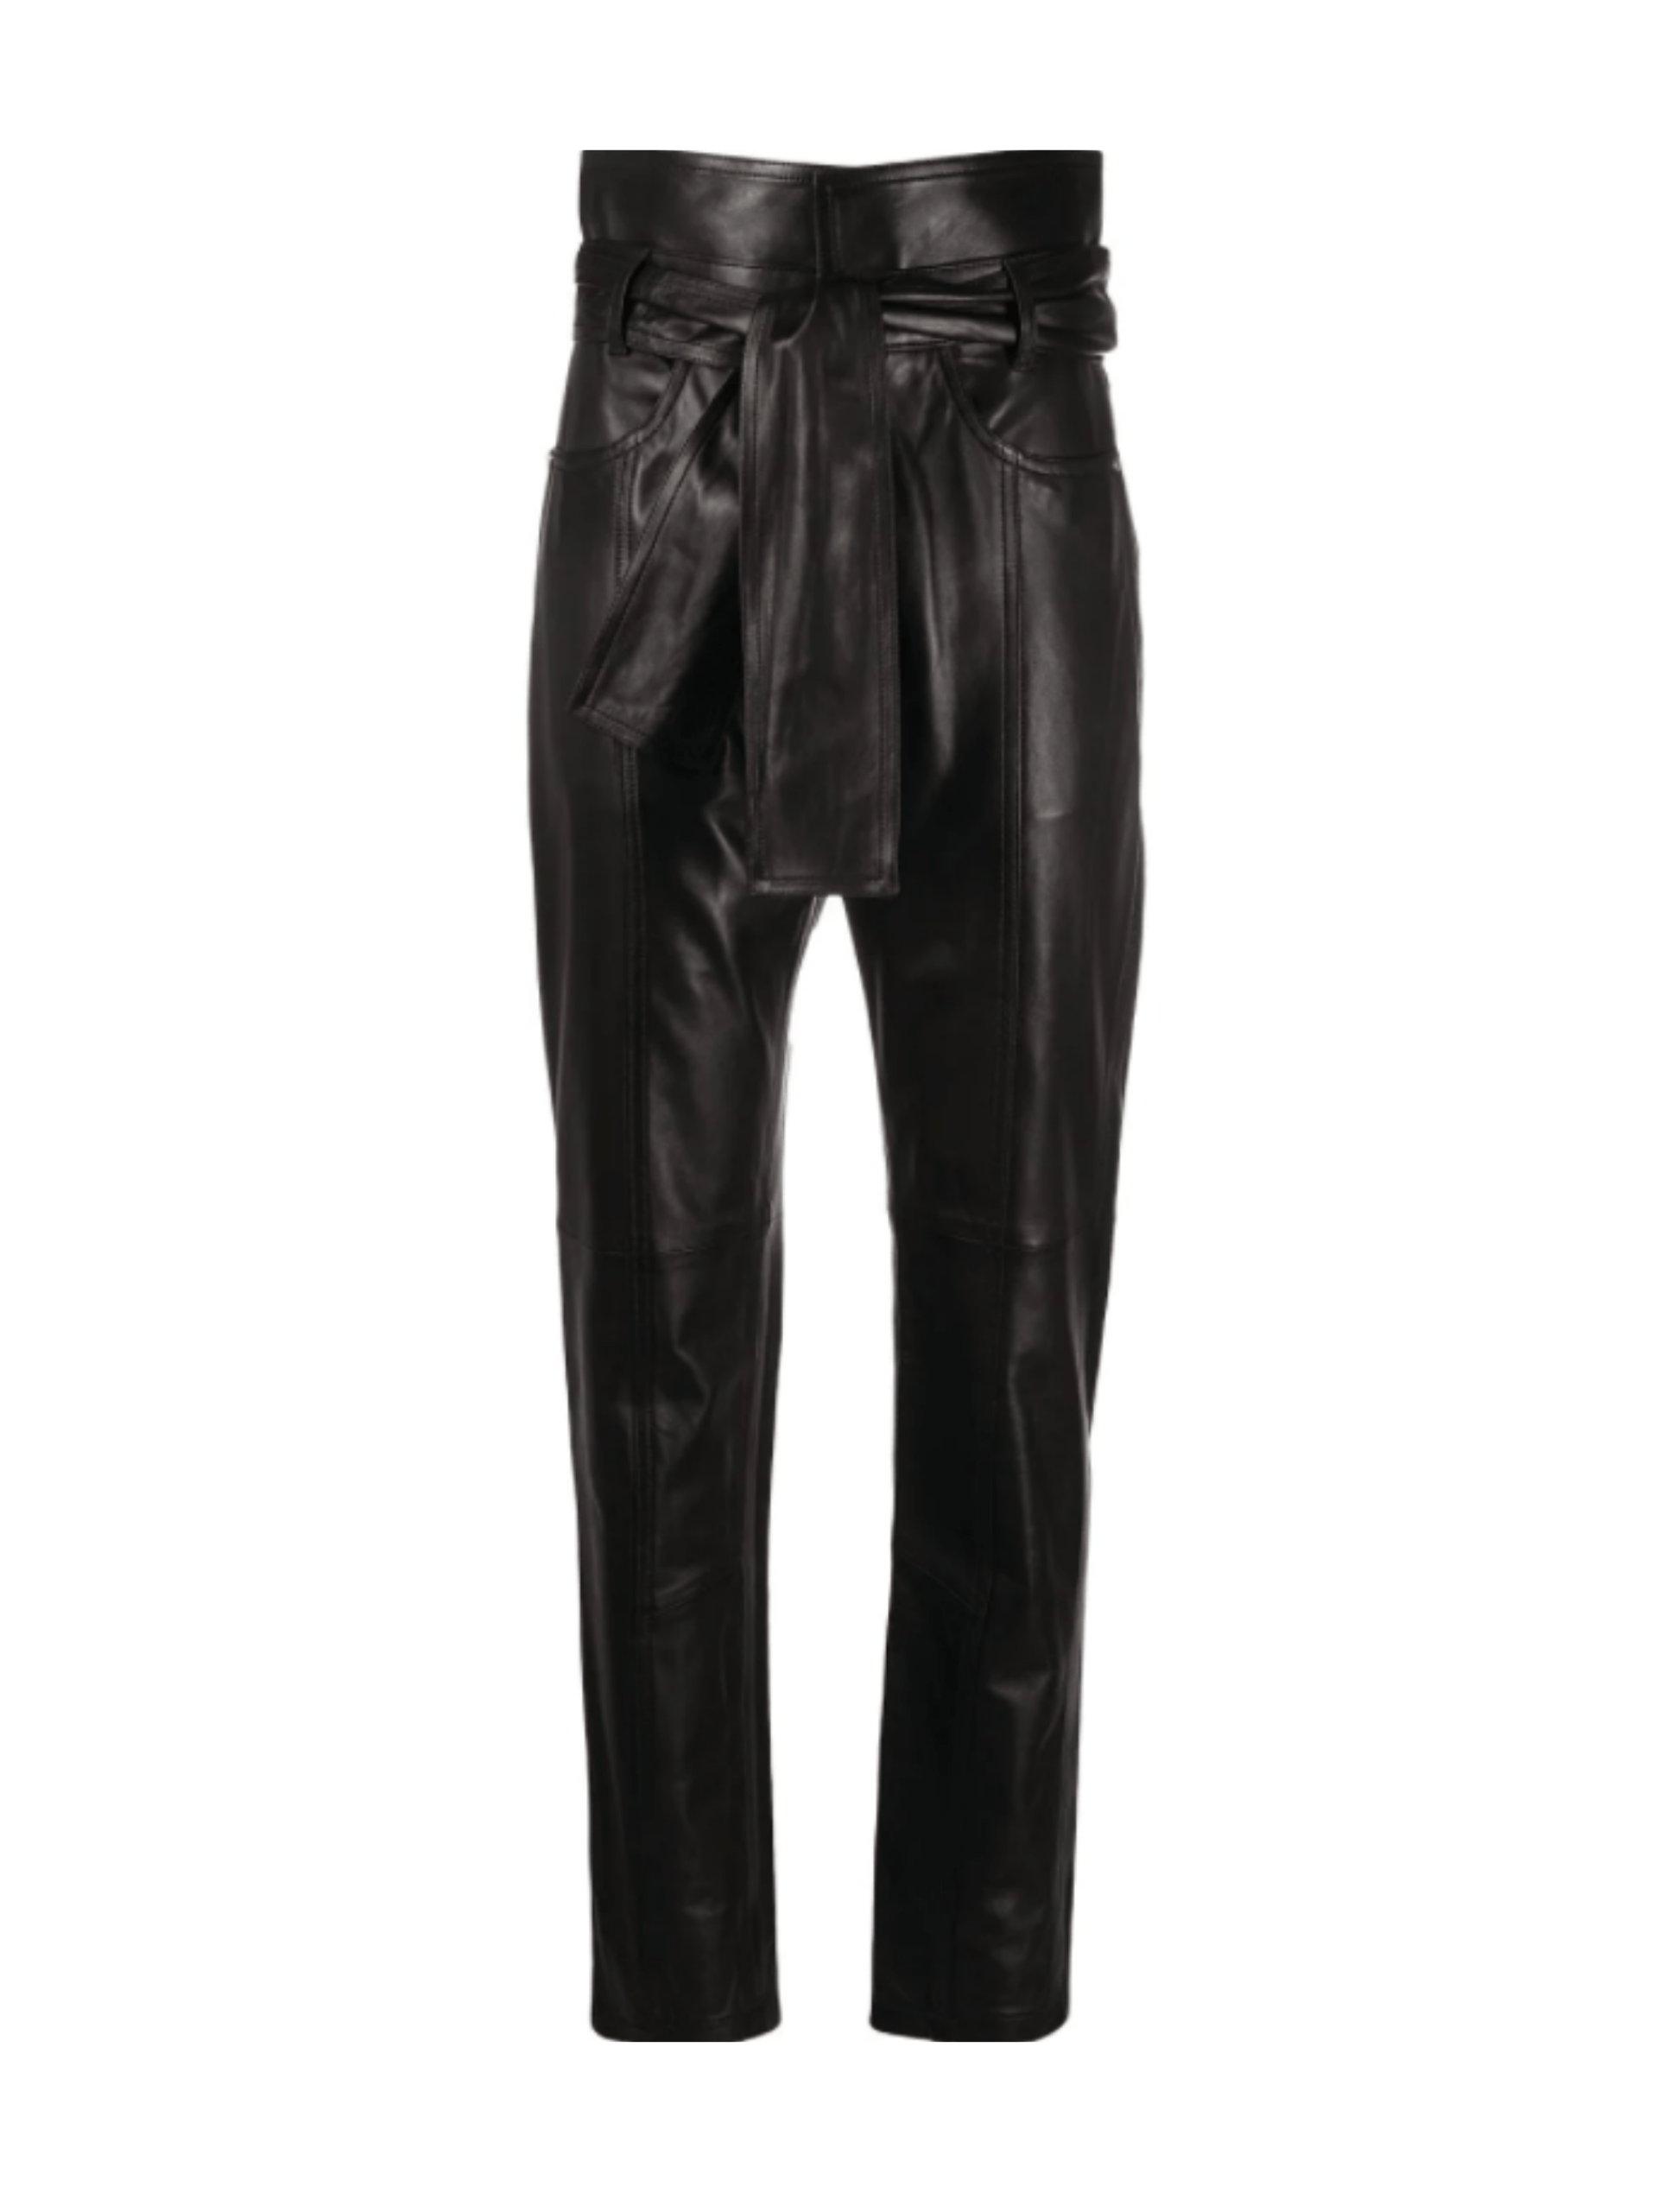 Limest Leather Paperbag Pants / Black Womens IRO